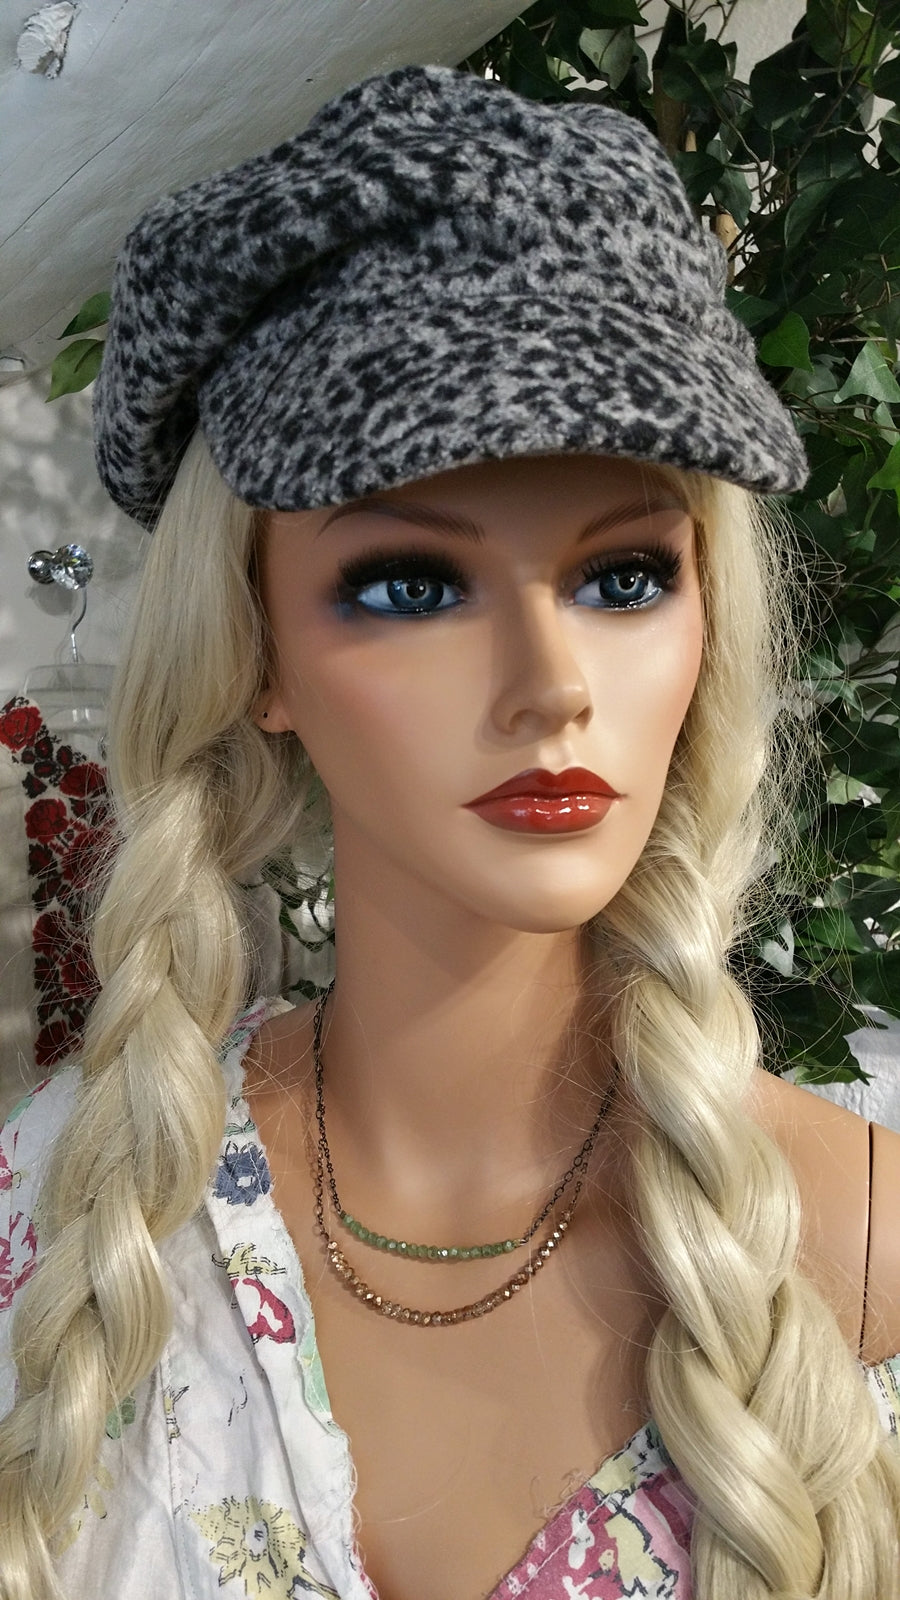 Gray Cheetah Cabby Newsboy Hat with Stripes